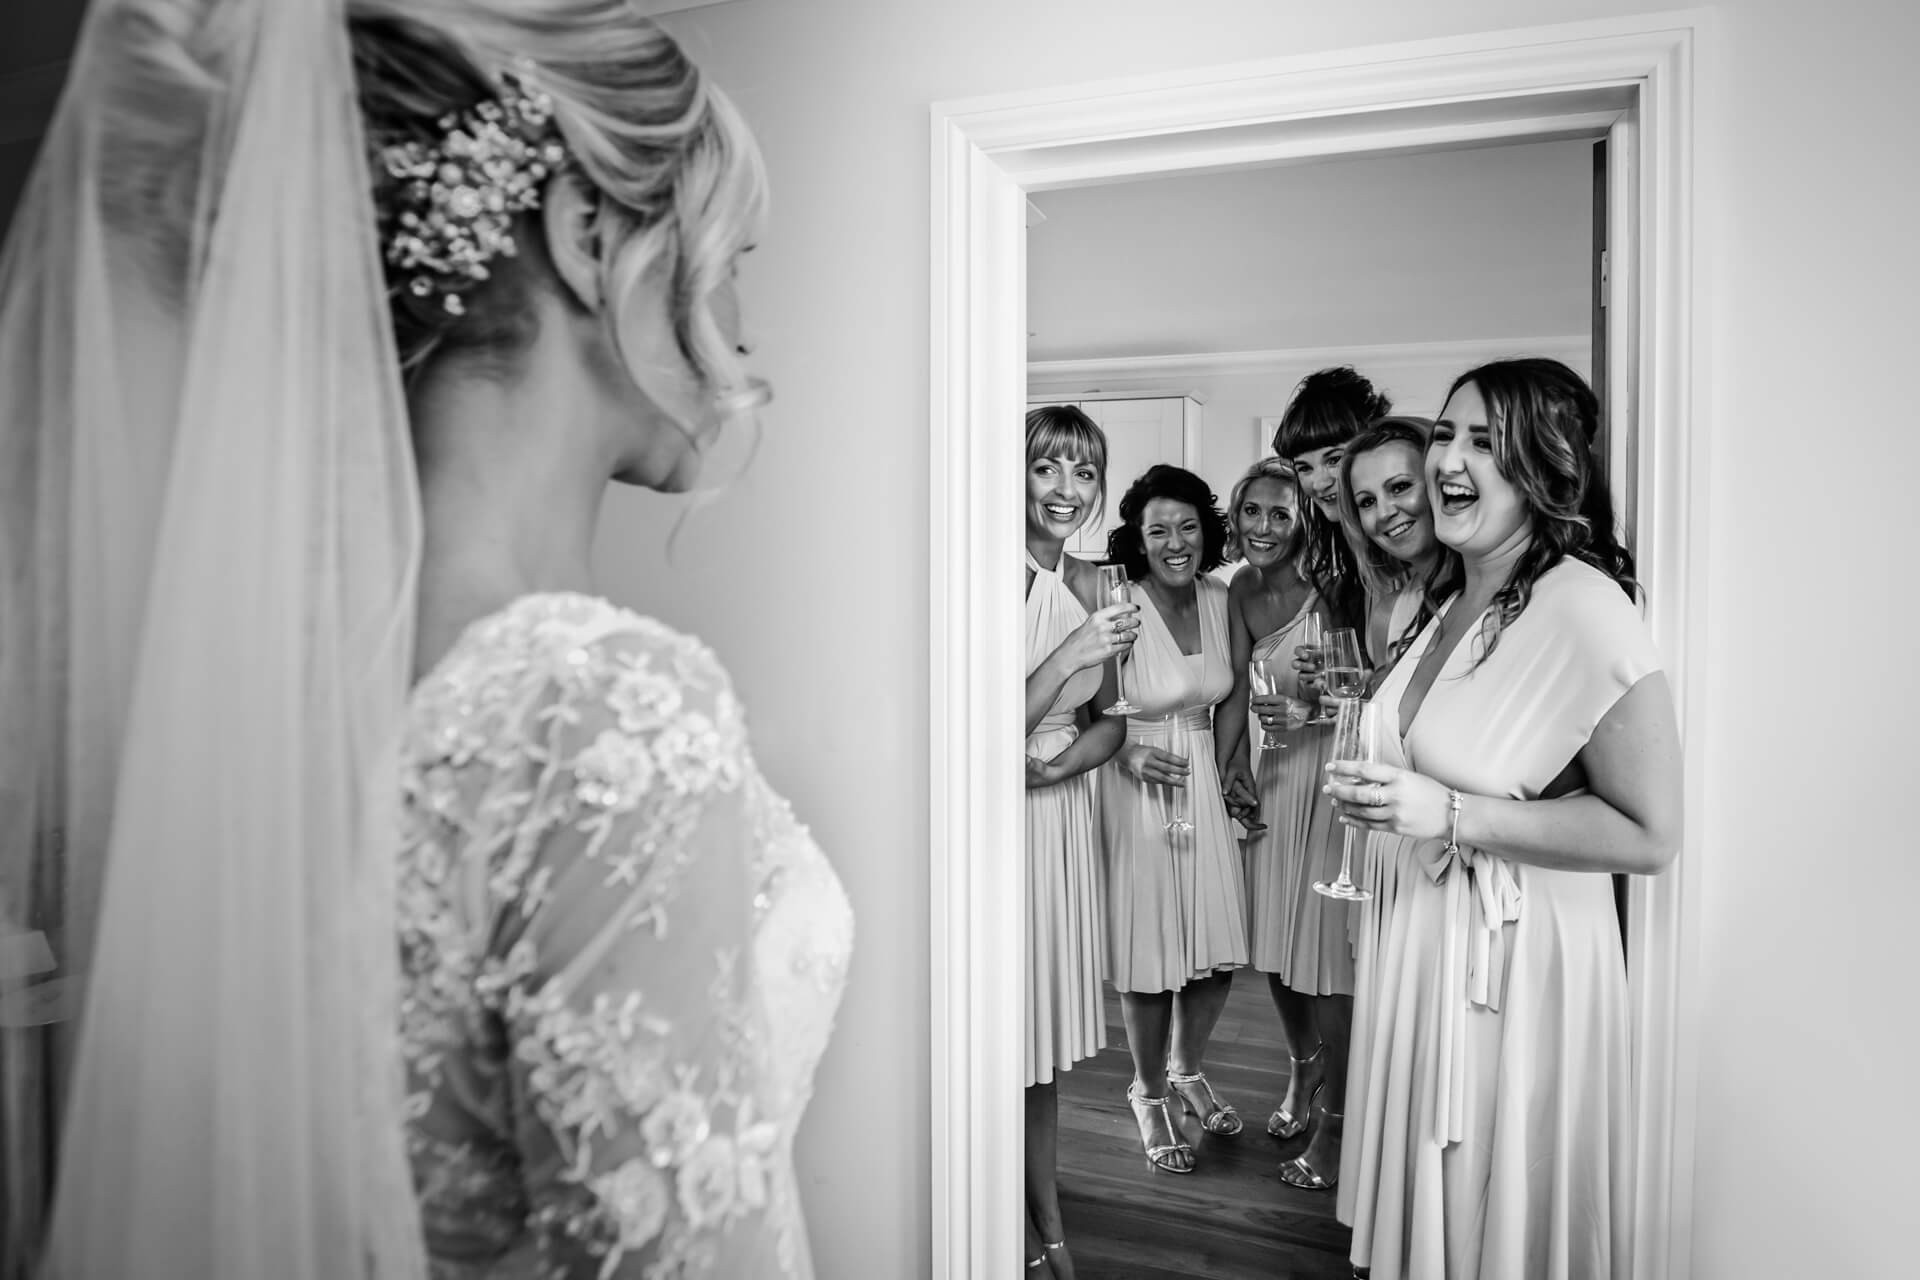 bridesmaids all smiling when they see the bride in her dress